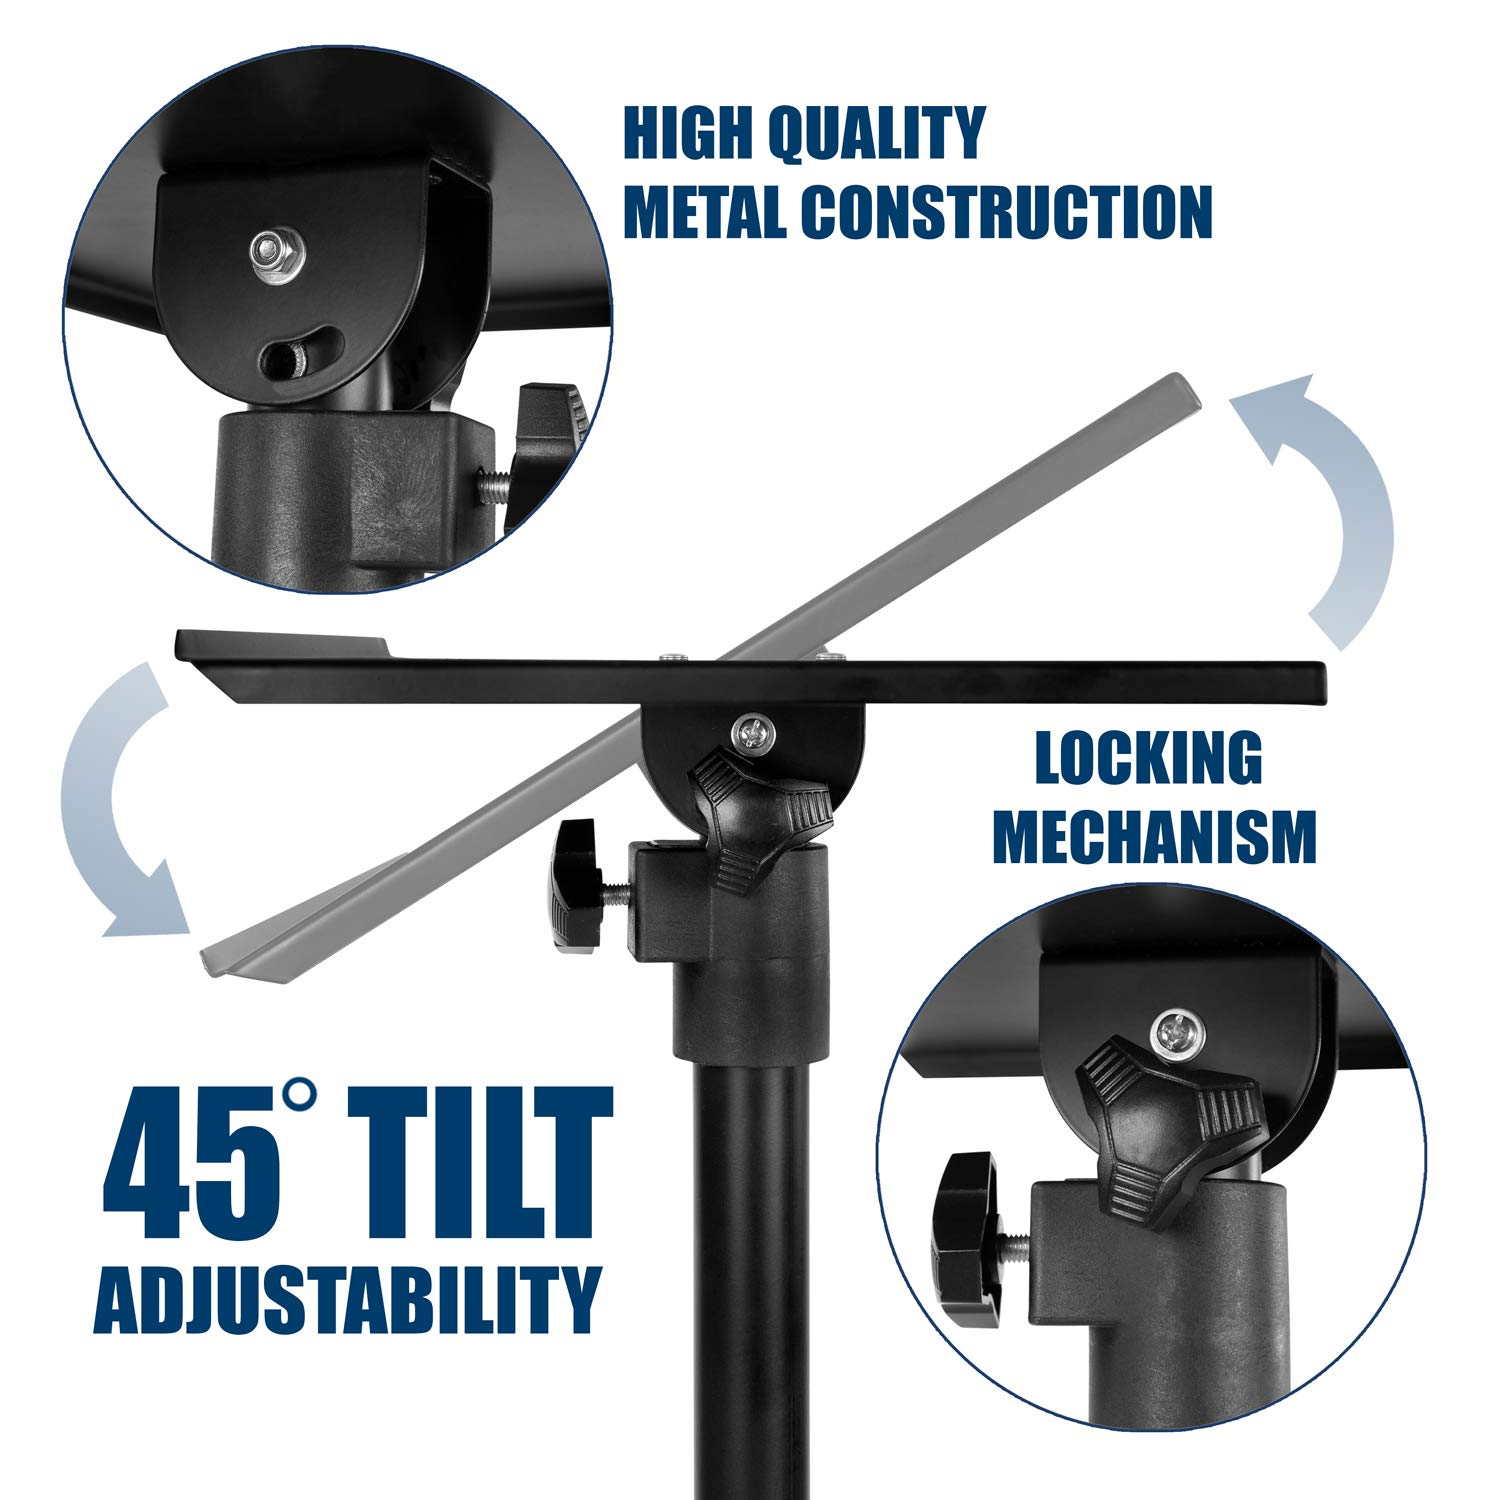 Mount-It! Tripod Projector Stand, Adjustable DJ Laptop Stand with Height and Tilt Adjustment, Portable Laptop Projector Table with Steel Tripod Base and Tray, Black by Mount-It! (Image #8)